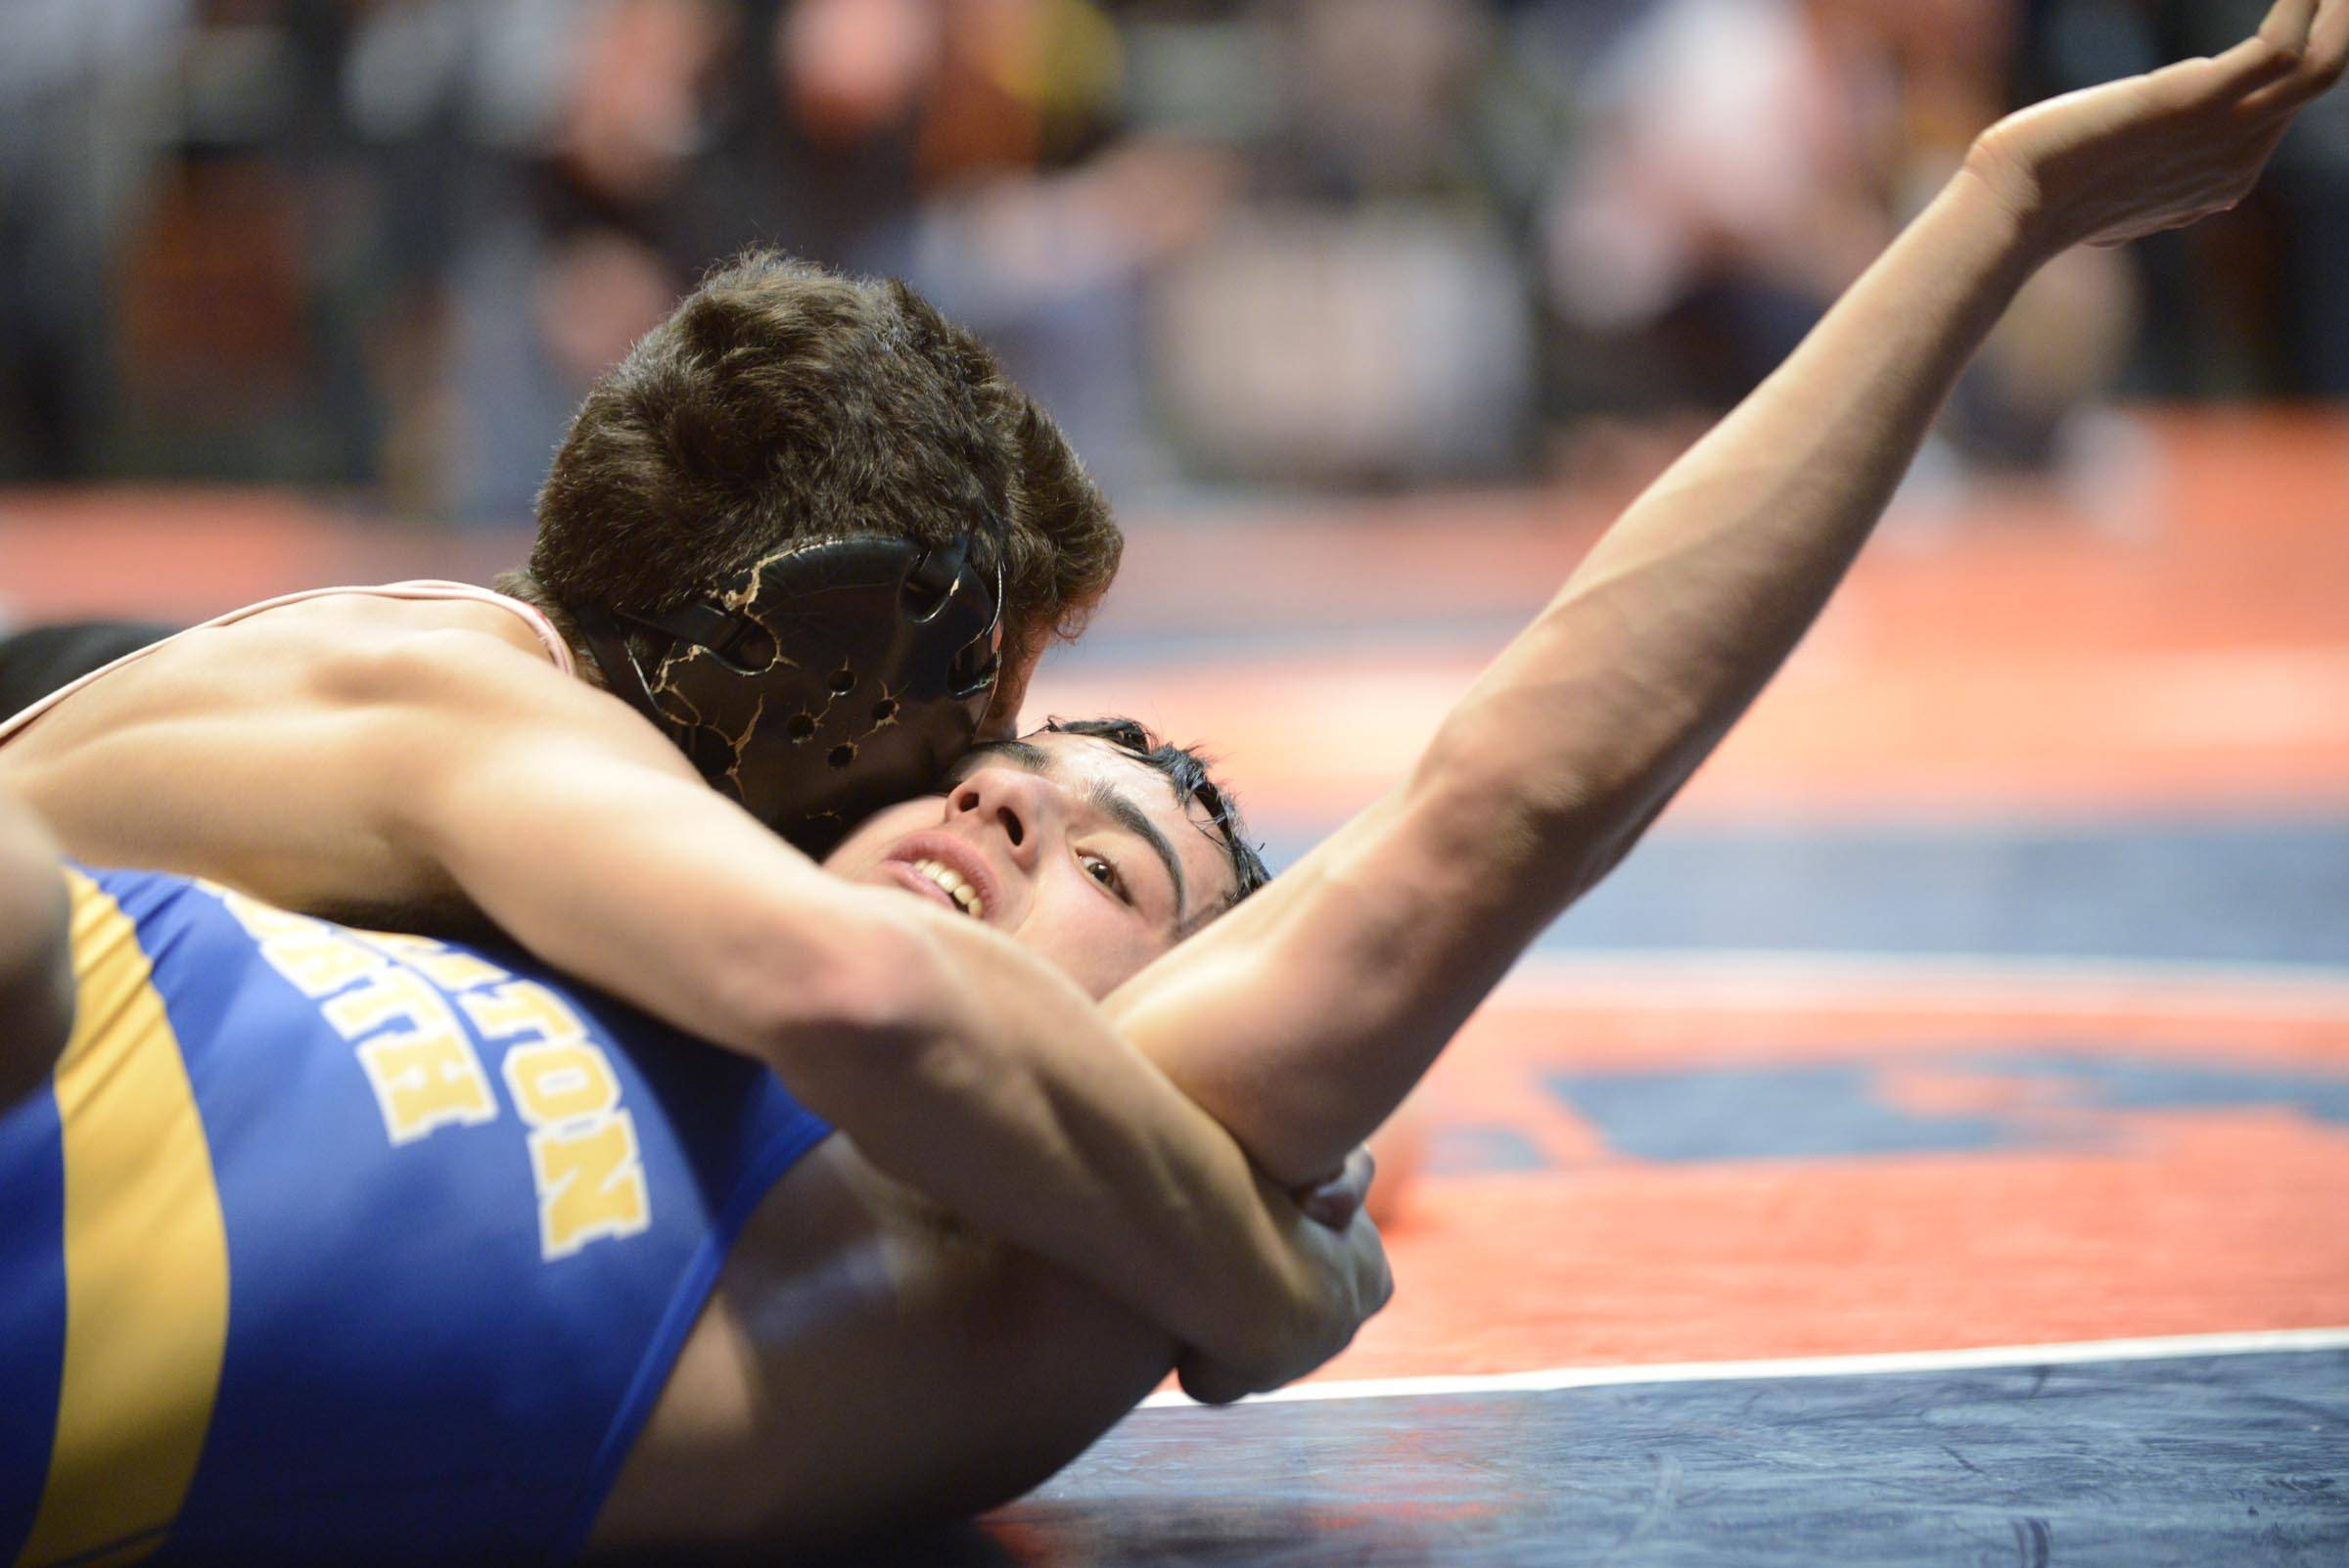 John Starks/jstarks@dailyherald.comJohnny Jimenez of Marmion Academy pins Dylan Thurston of Wheaton North Friday in the 126-pound weight class semifinals of the wrestling IHSA Class 3A state tournament at State Farm Center in Champaign.